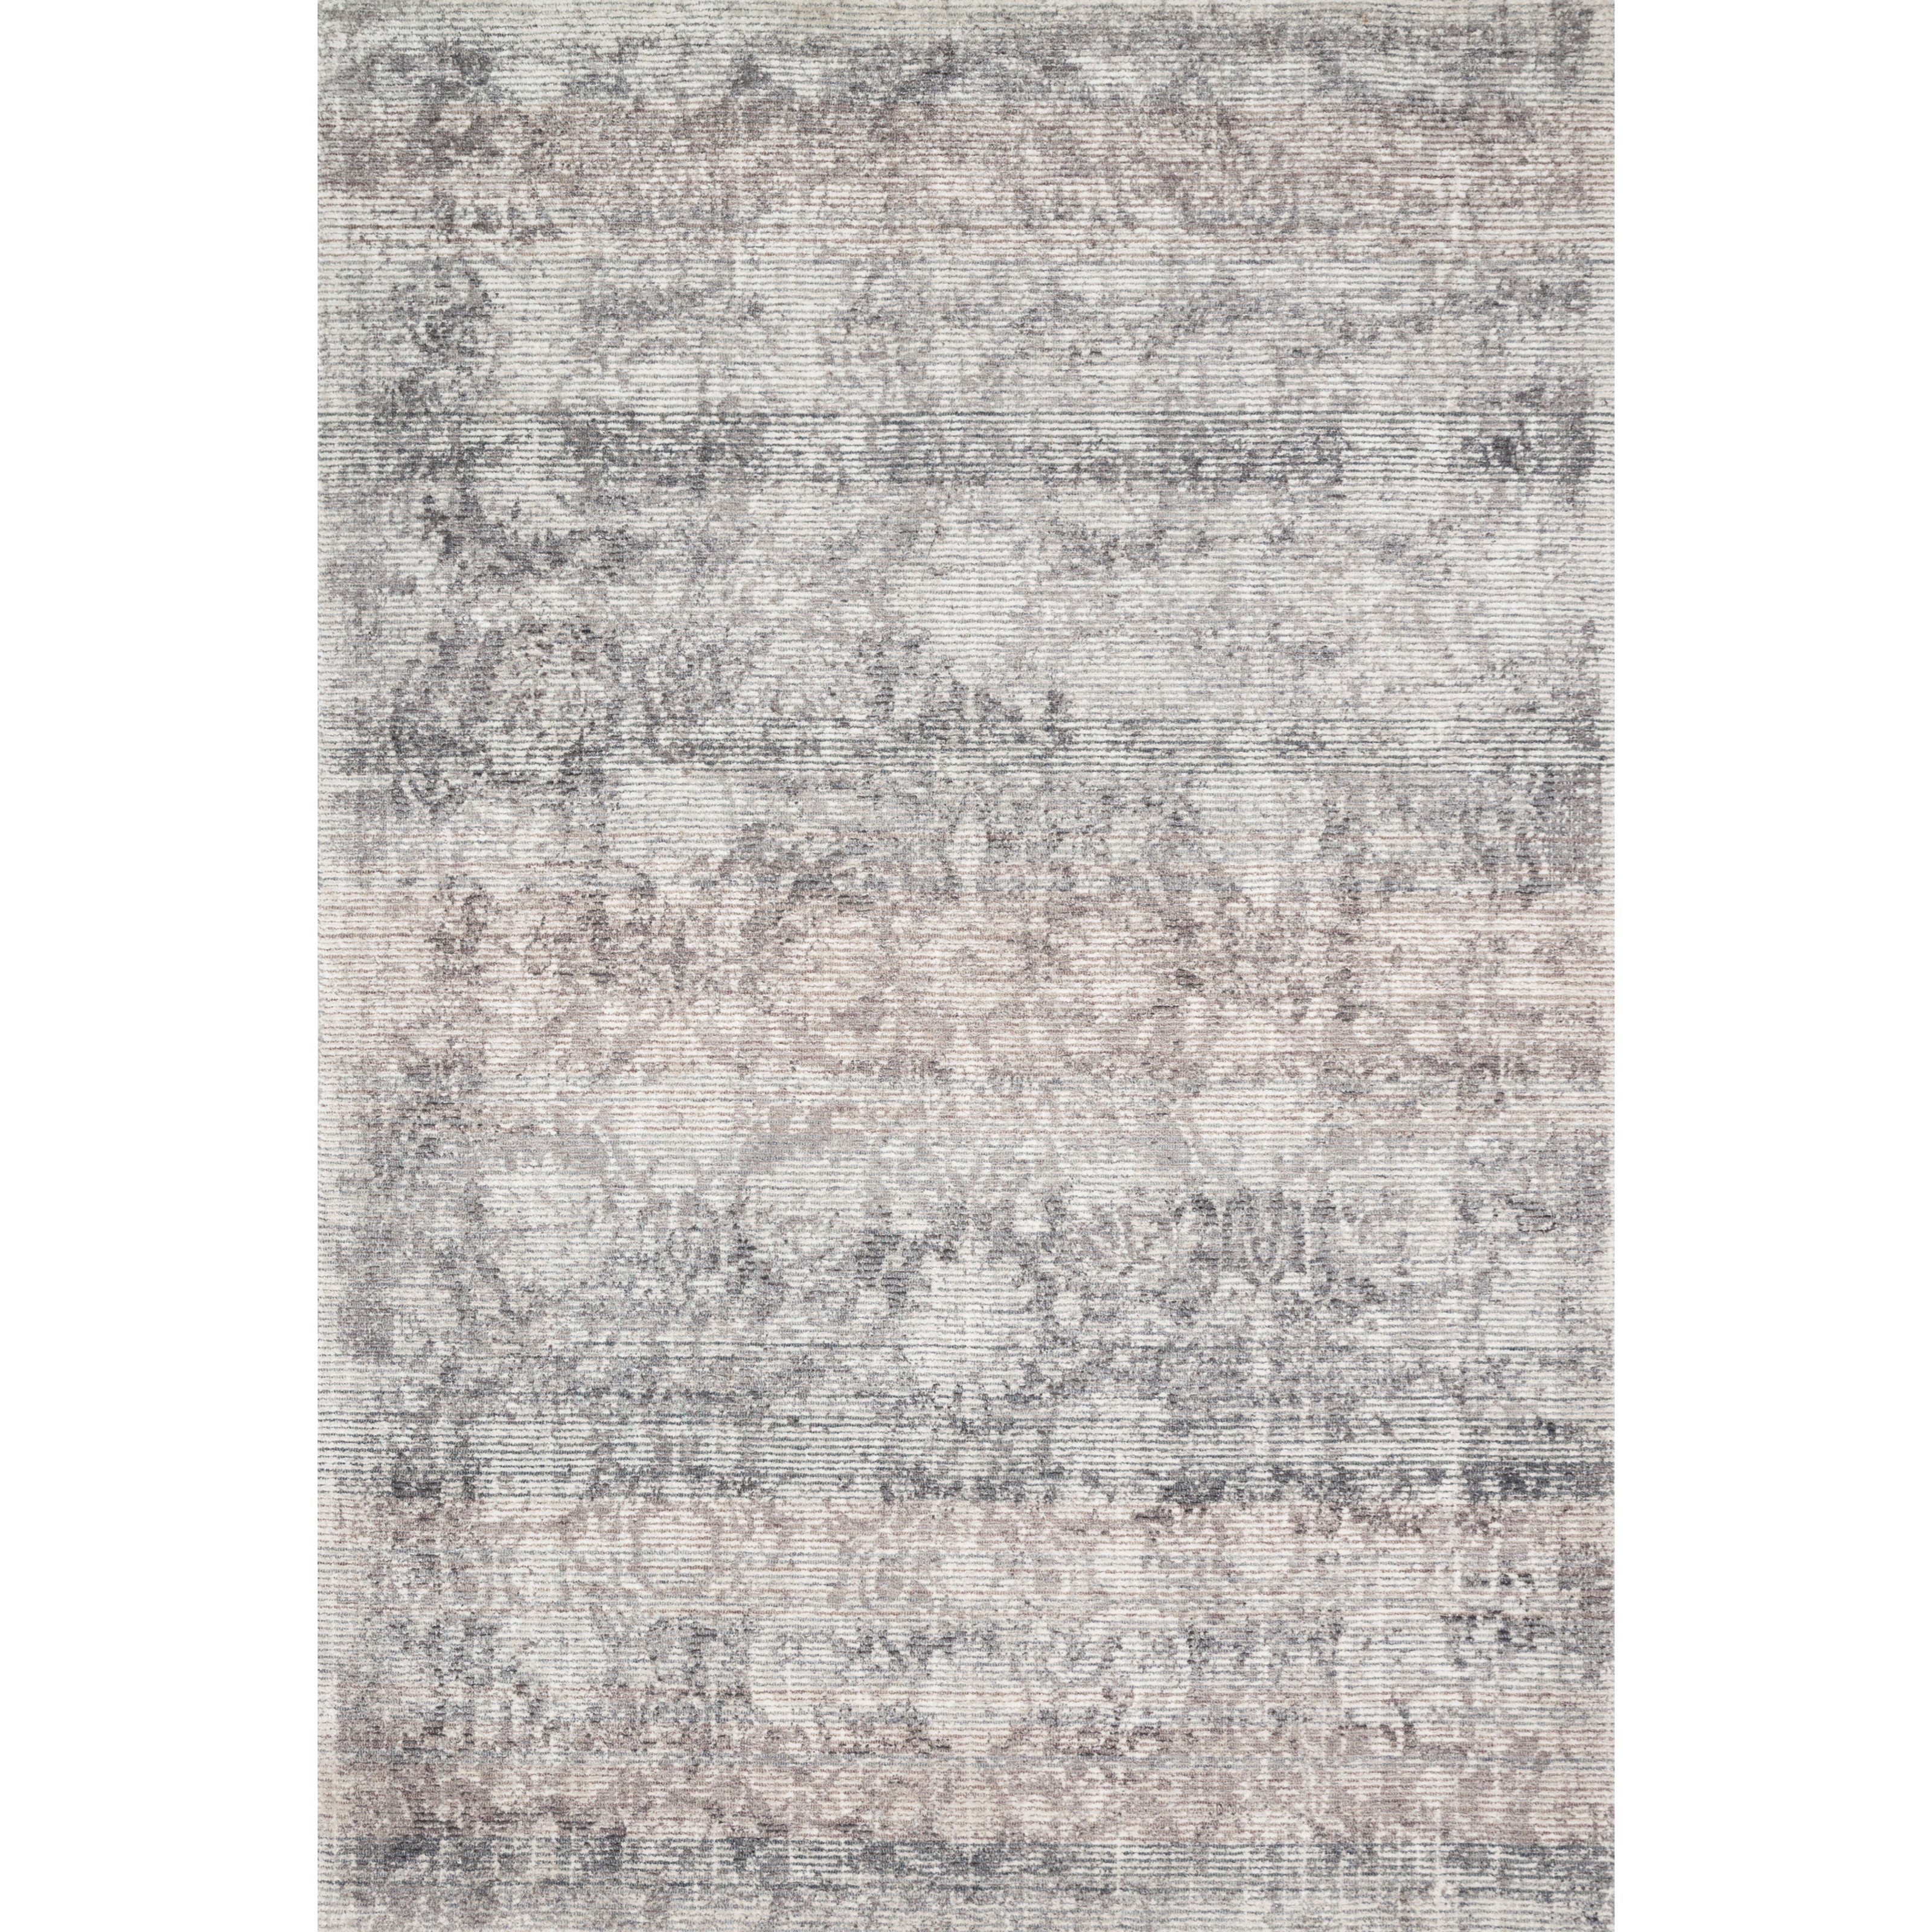 """Rumi 9'3"""" x 13' Pewter Rug by Loloi Rugs at Virginia Furniture Market"""